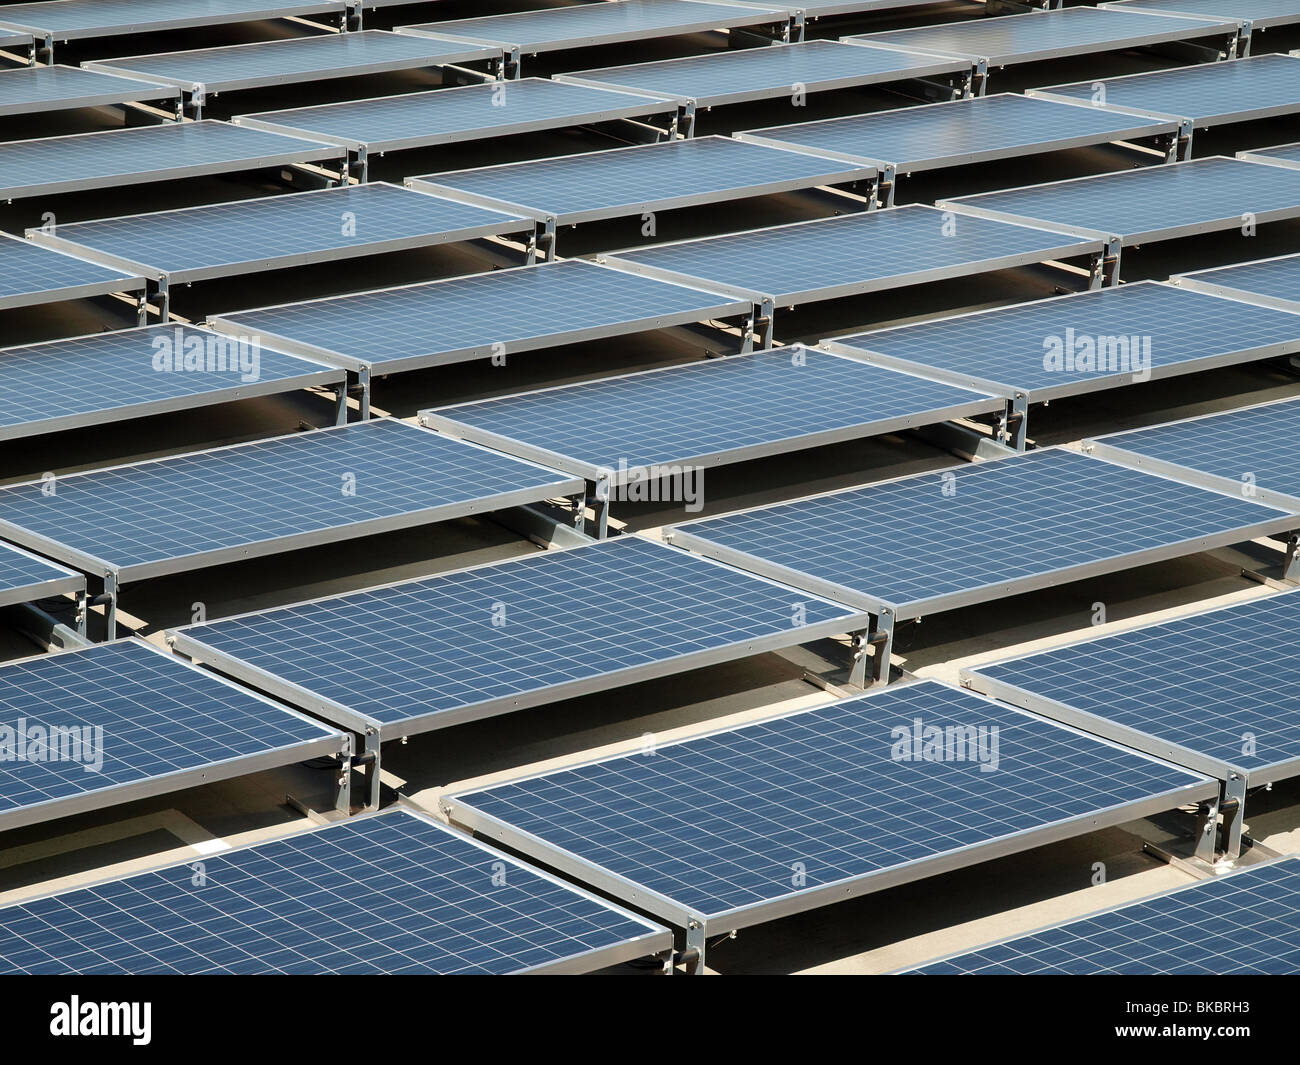 Shiny, new solar panels on a concrete rooftop. - Stock Image